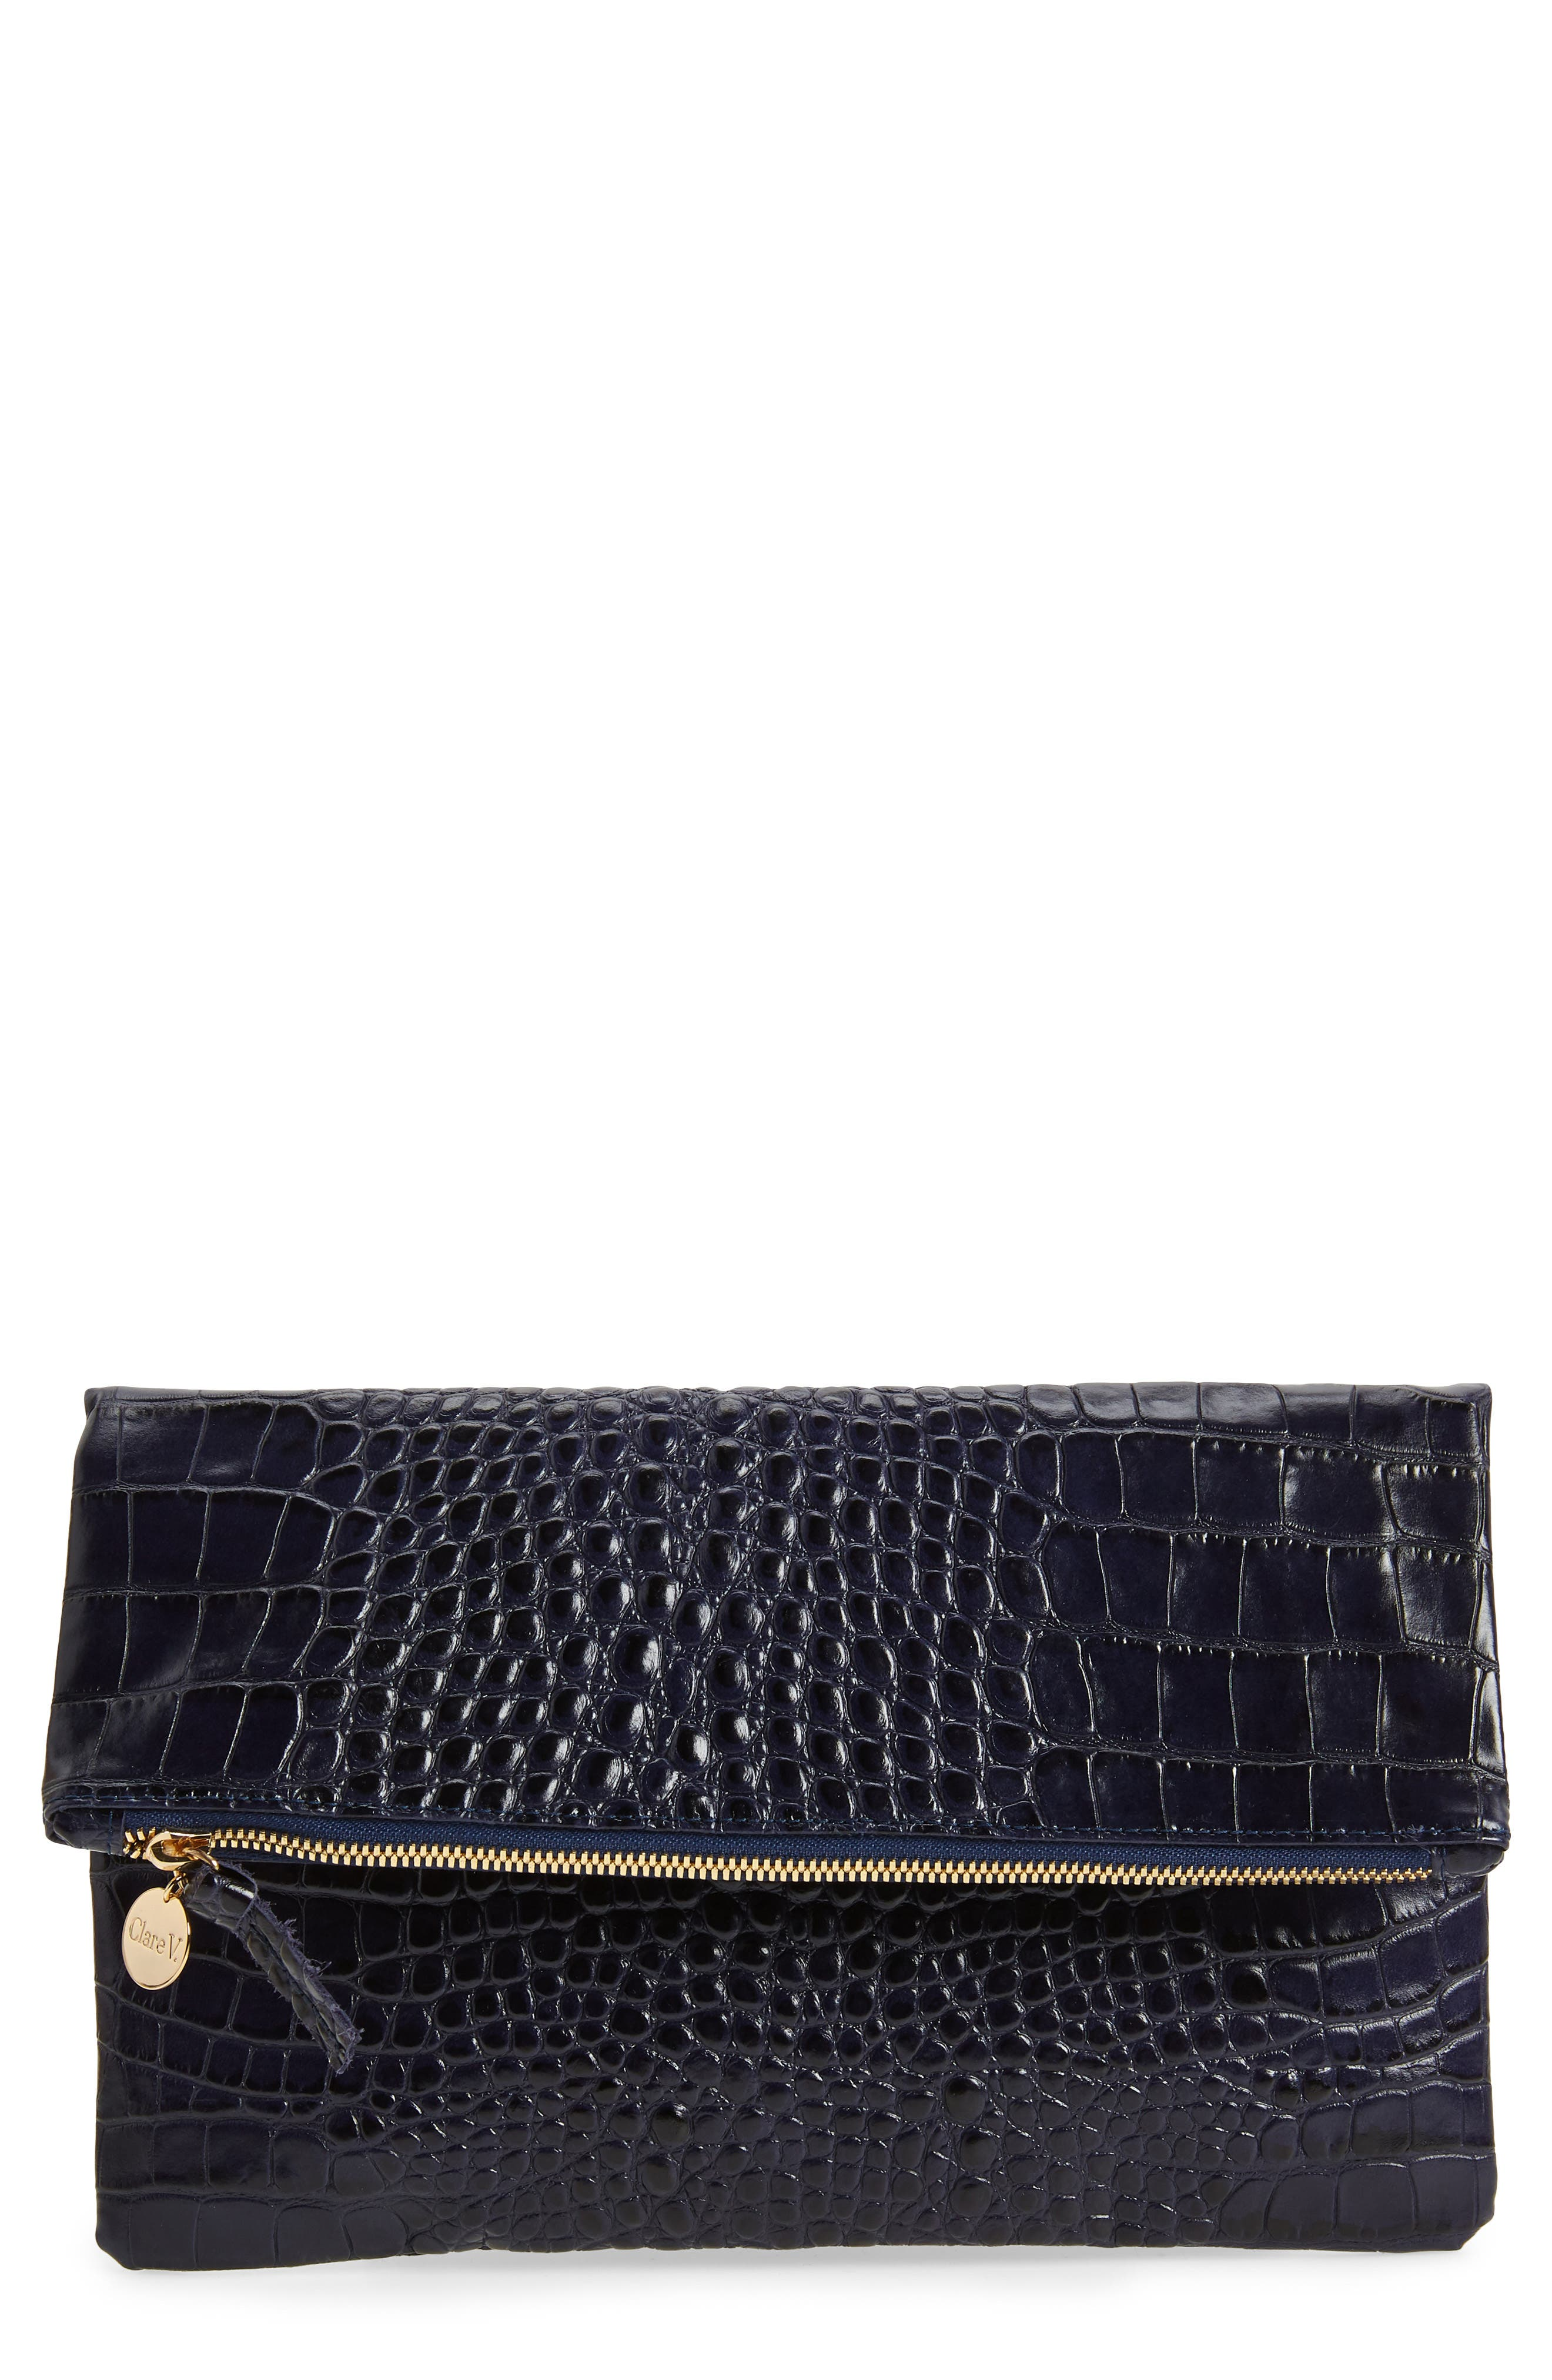 Croc Embossed Leather Foldover Clutch,                             Main thumbnail 1, color,                             MIDNIGHT CROCO